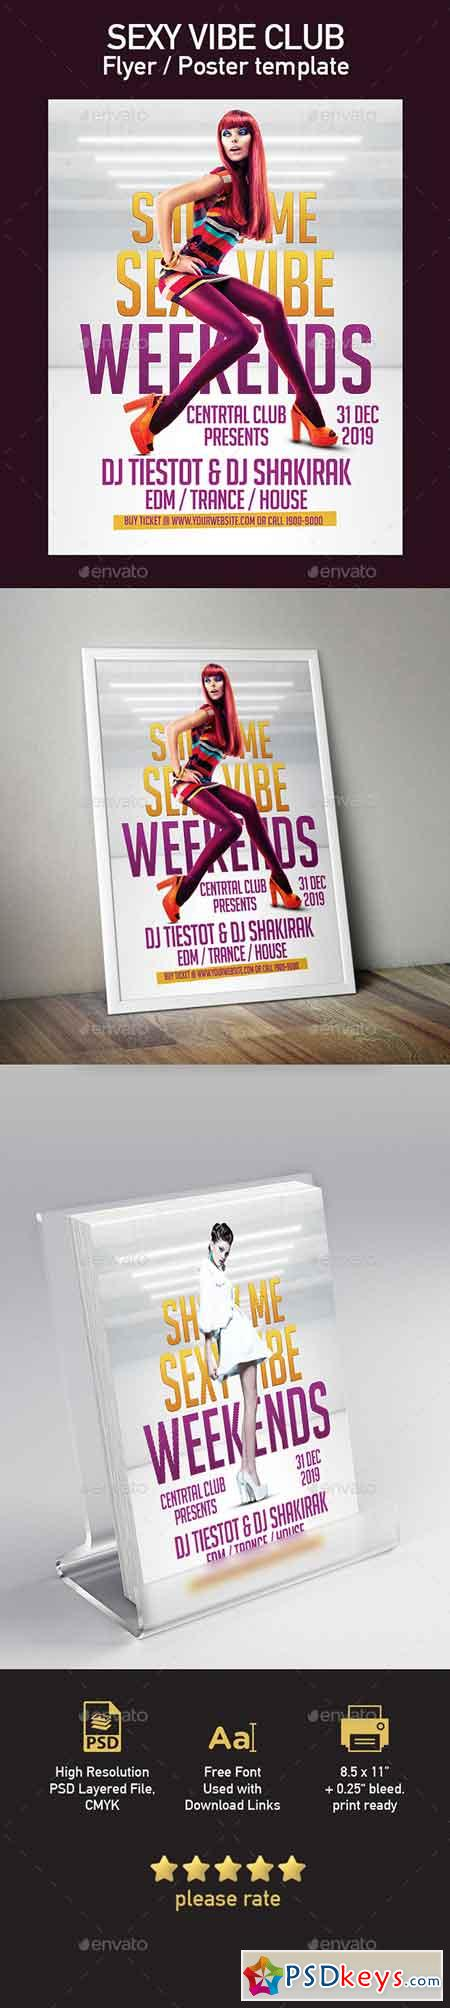 Sexy Vibe Club Flyer Poster Template 20413867